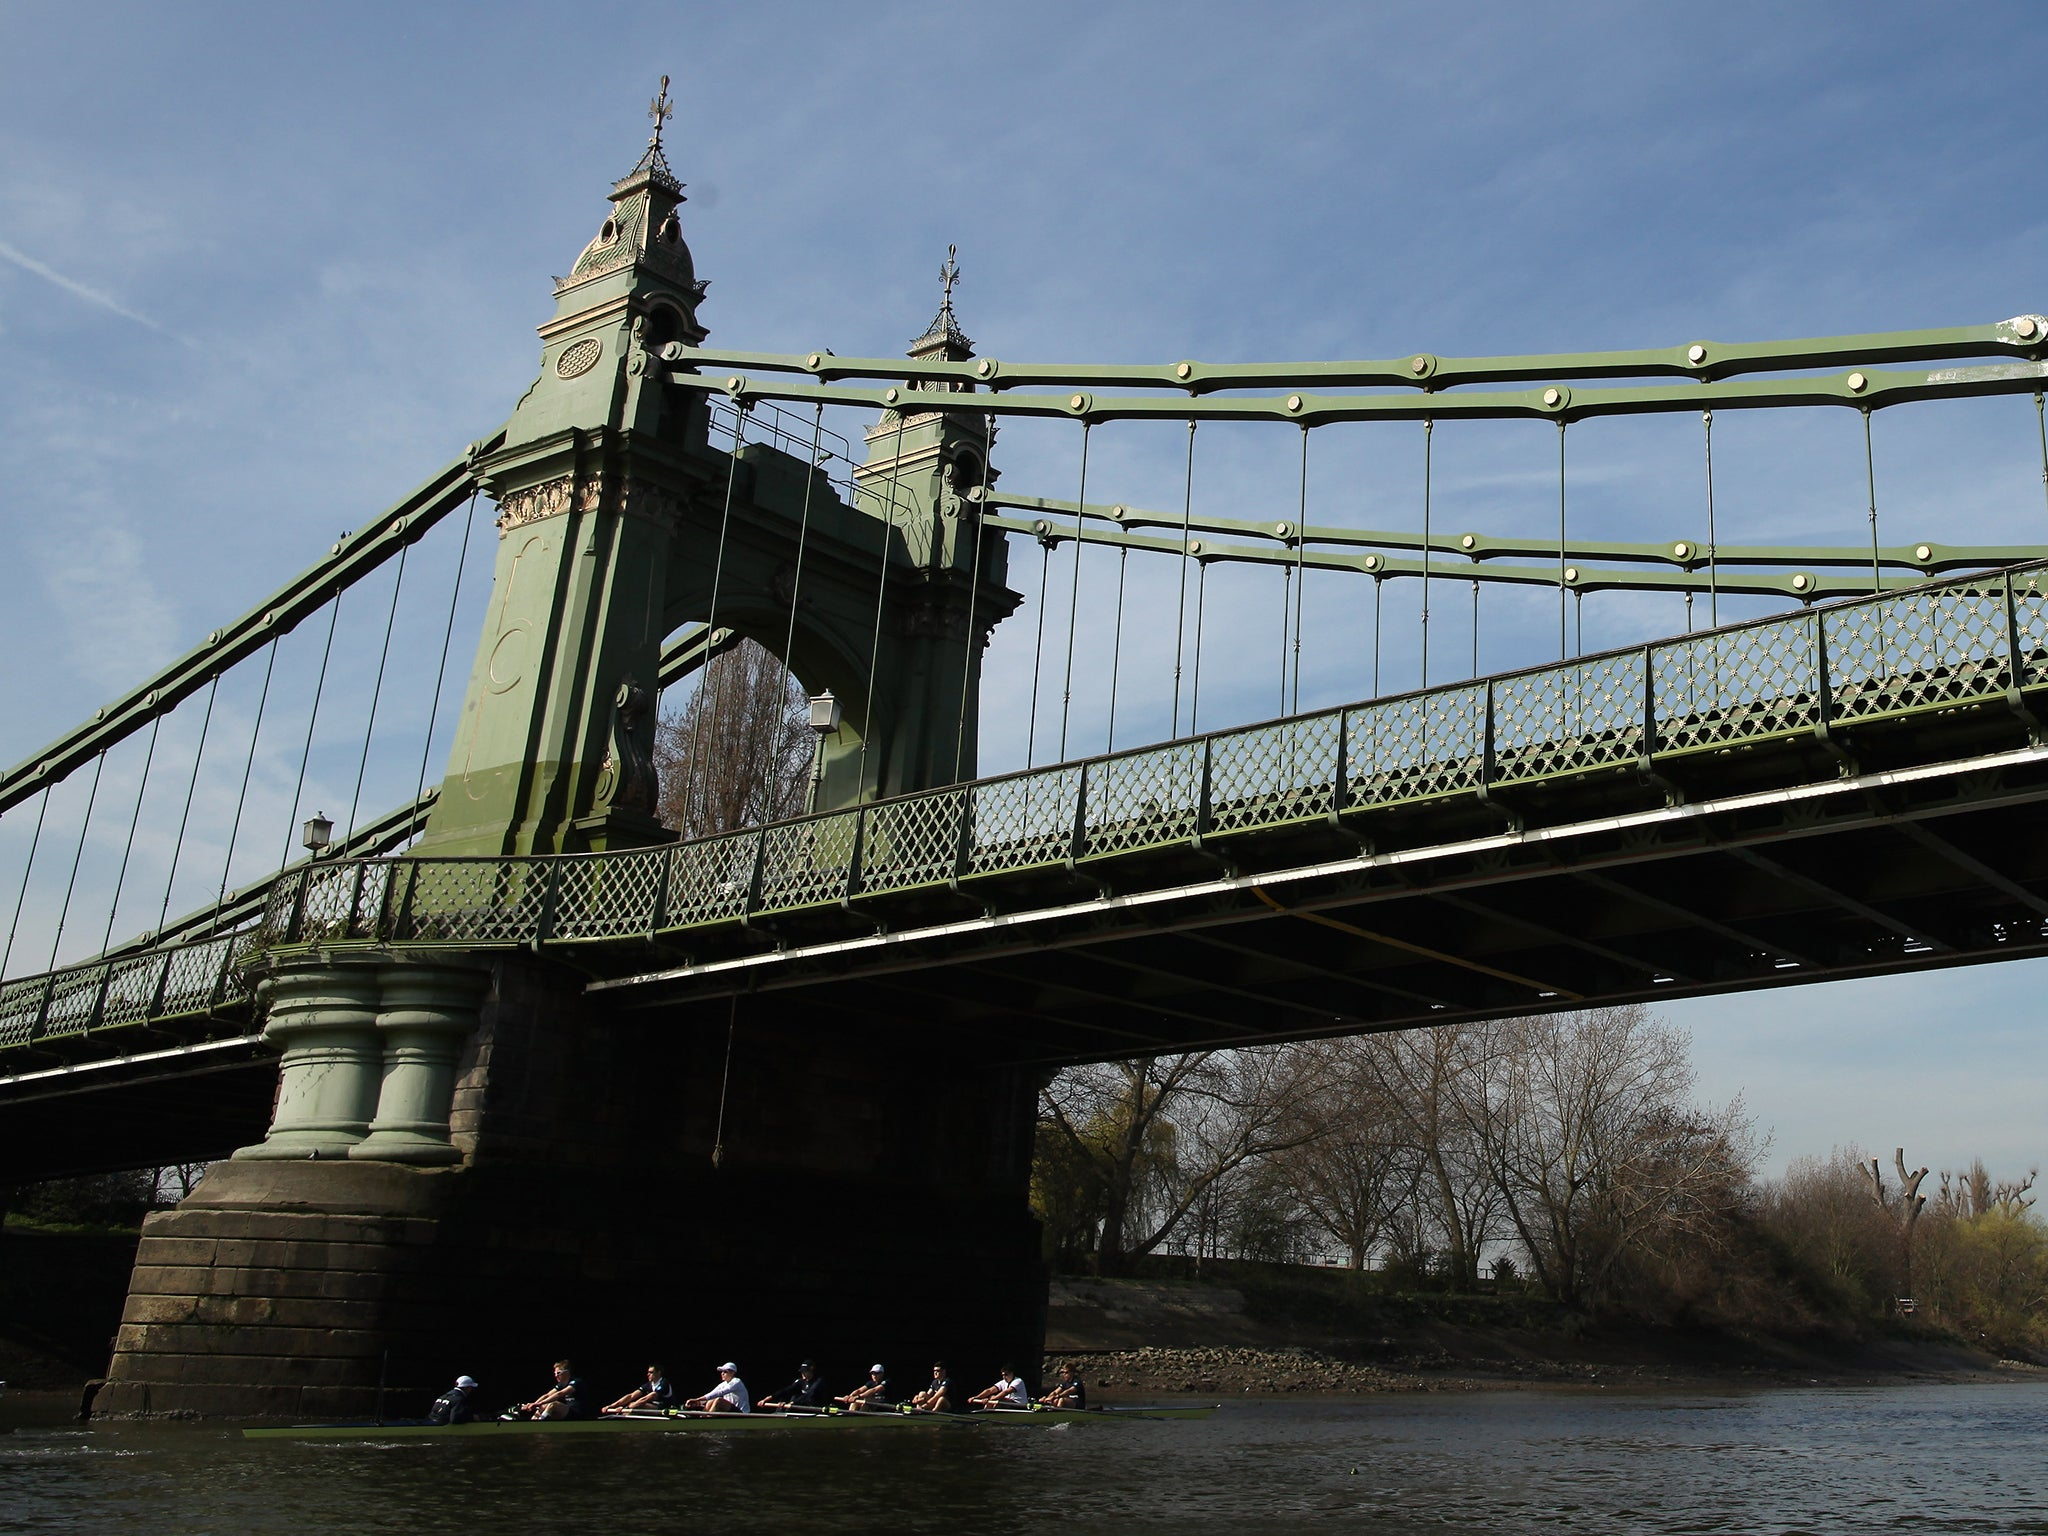 QnA VBage Hammersmith Bridge closed indefinitely due to 'critical faults'